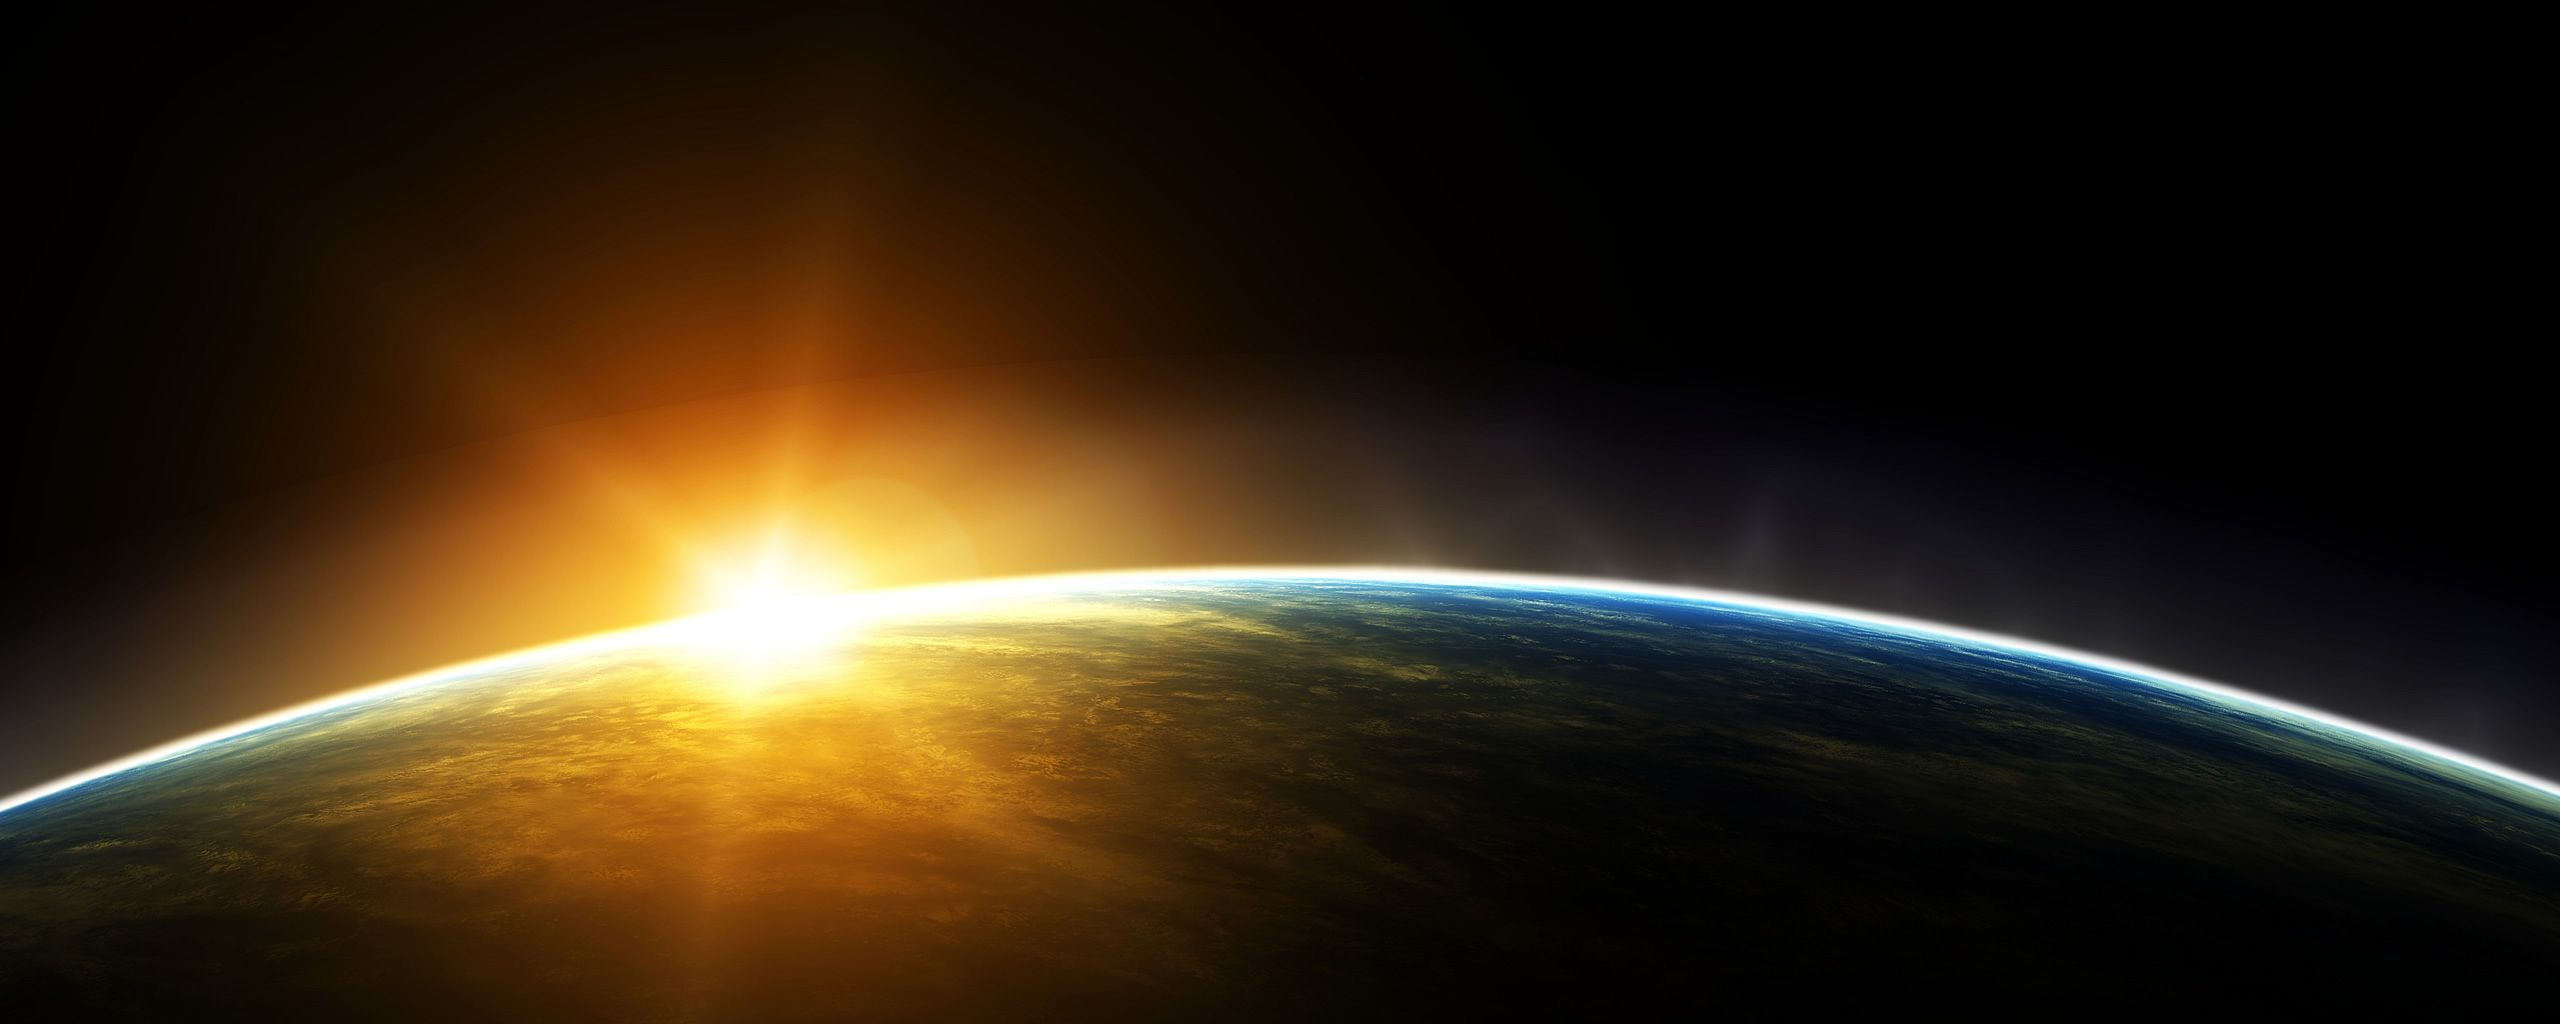 Sunrise From Space Amazing Dual Screen Wallpaper Dual Monitor Wallpaper Sunrise Wallpaper